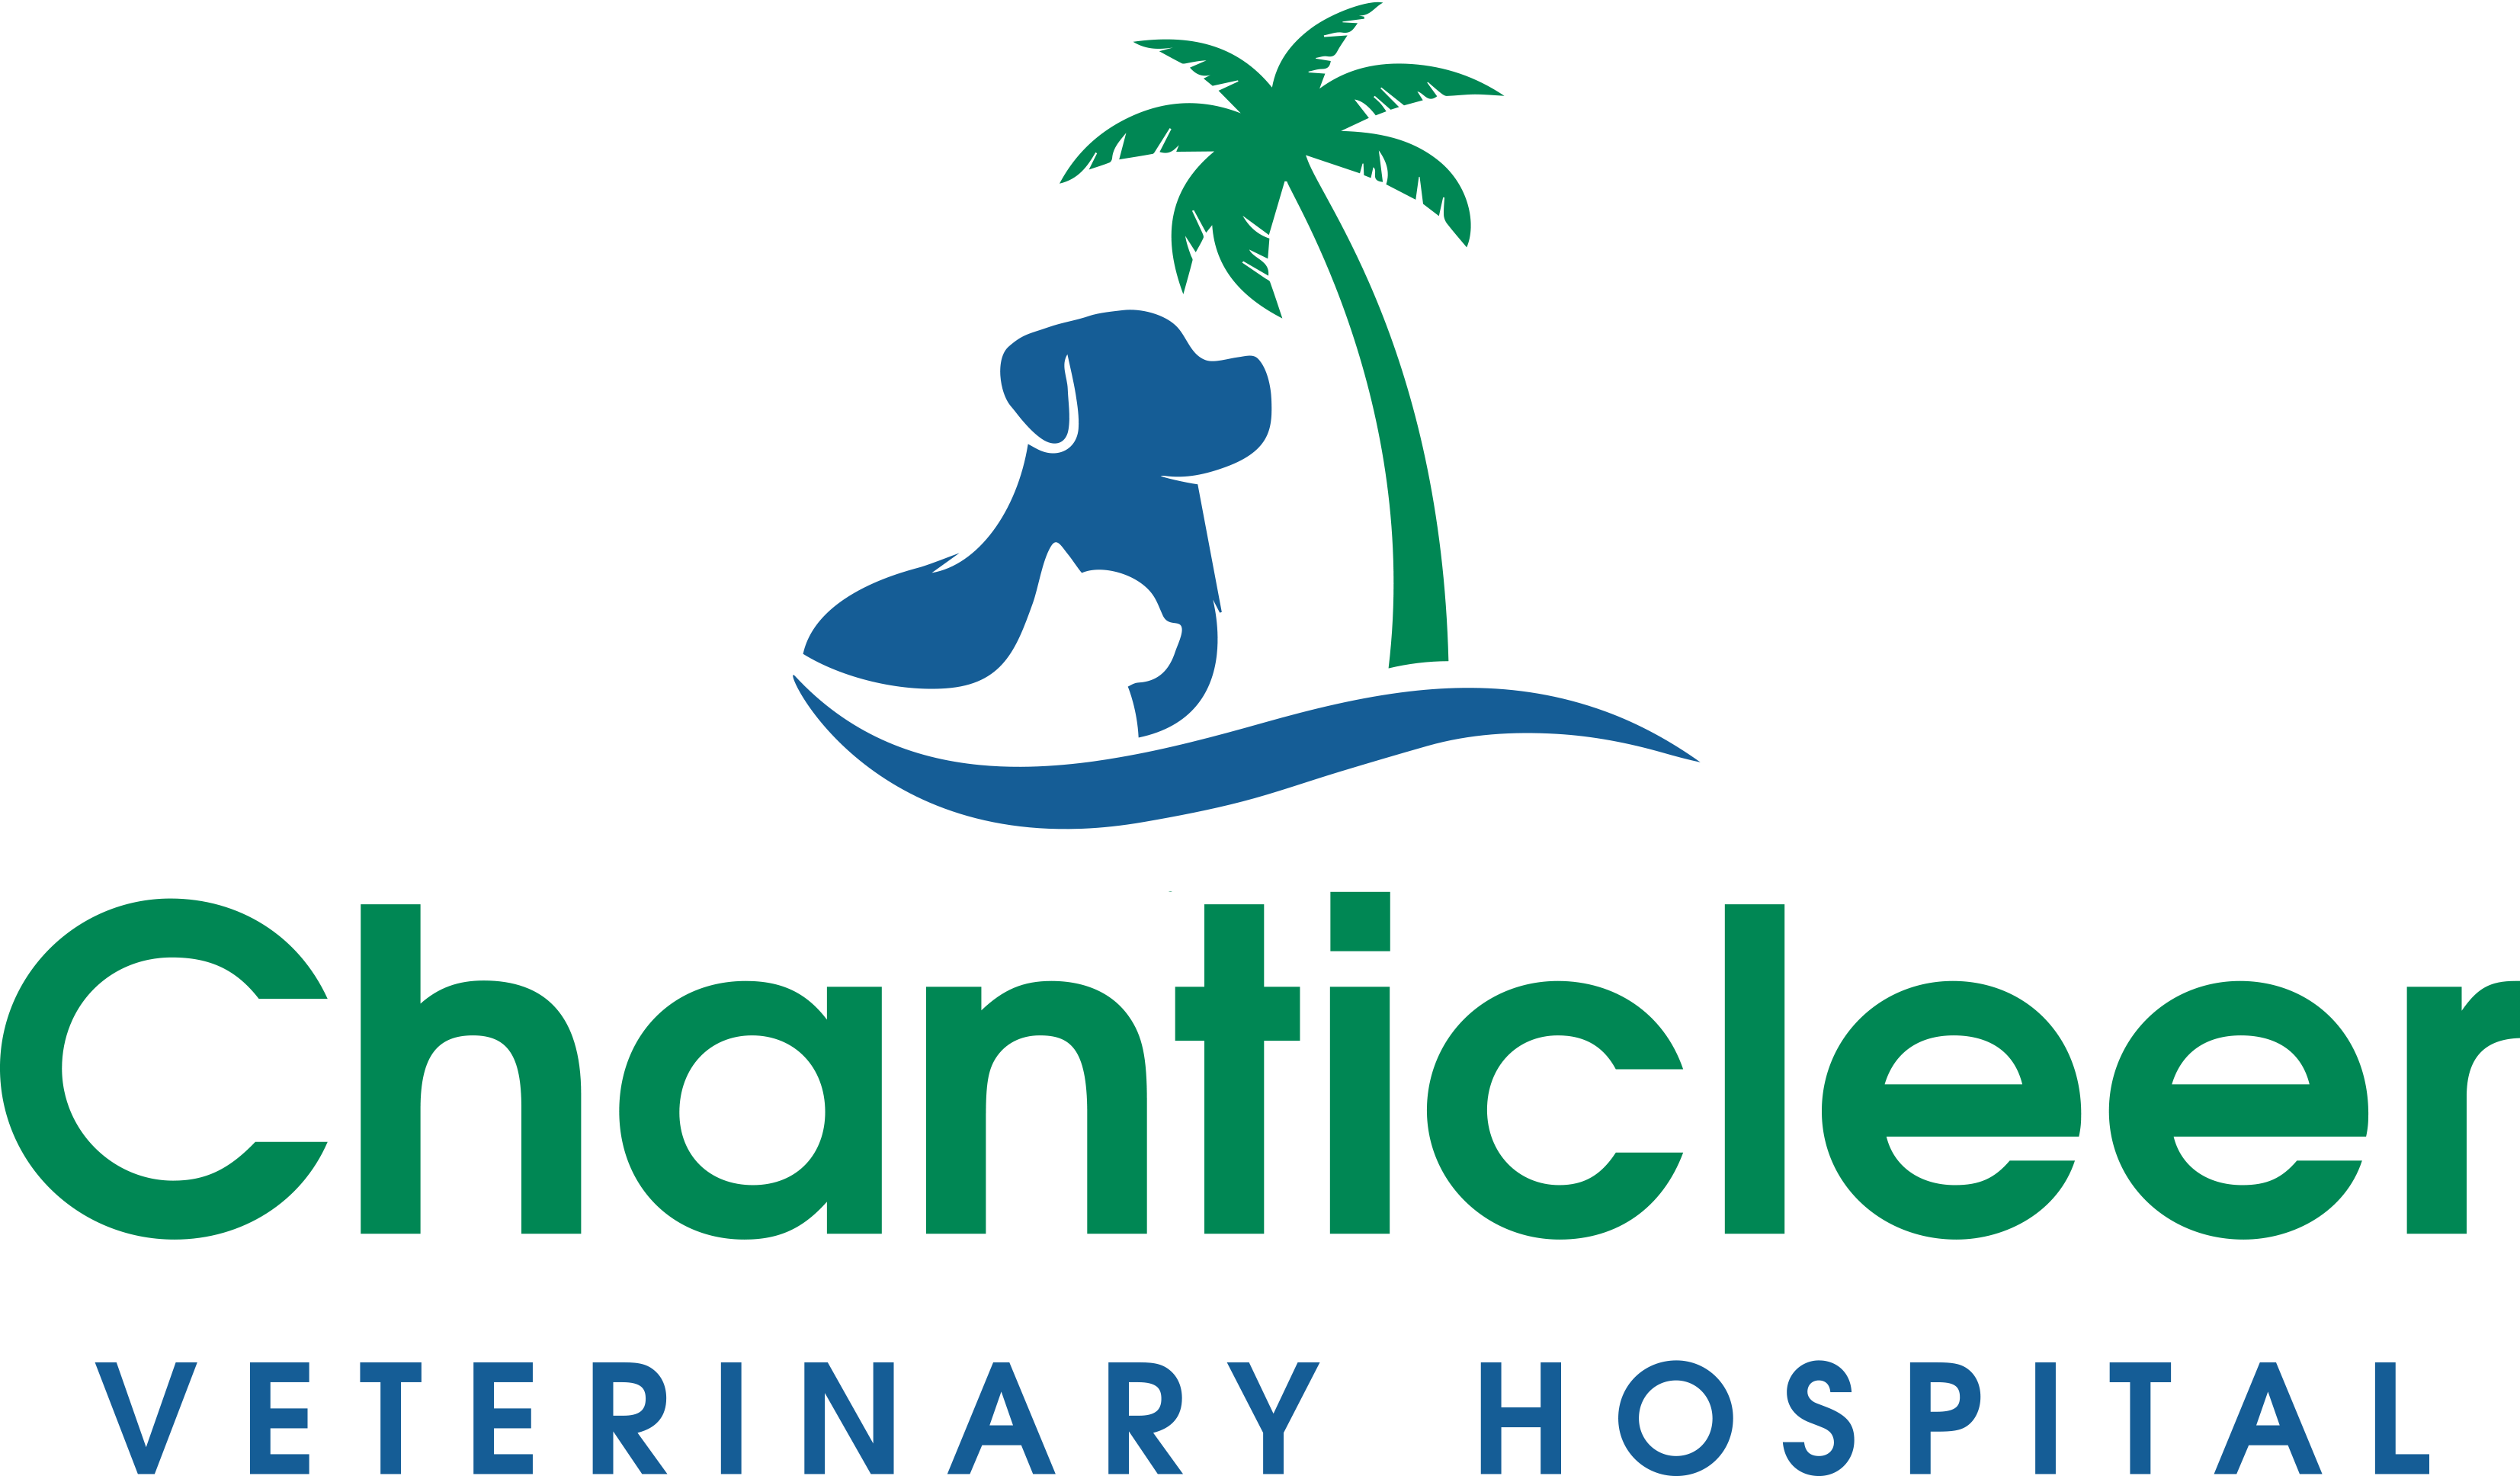 Chanticleer Veterinary Hospital